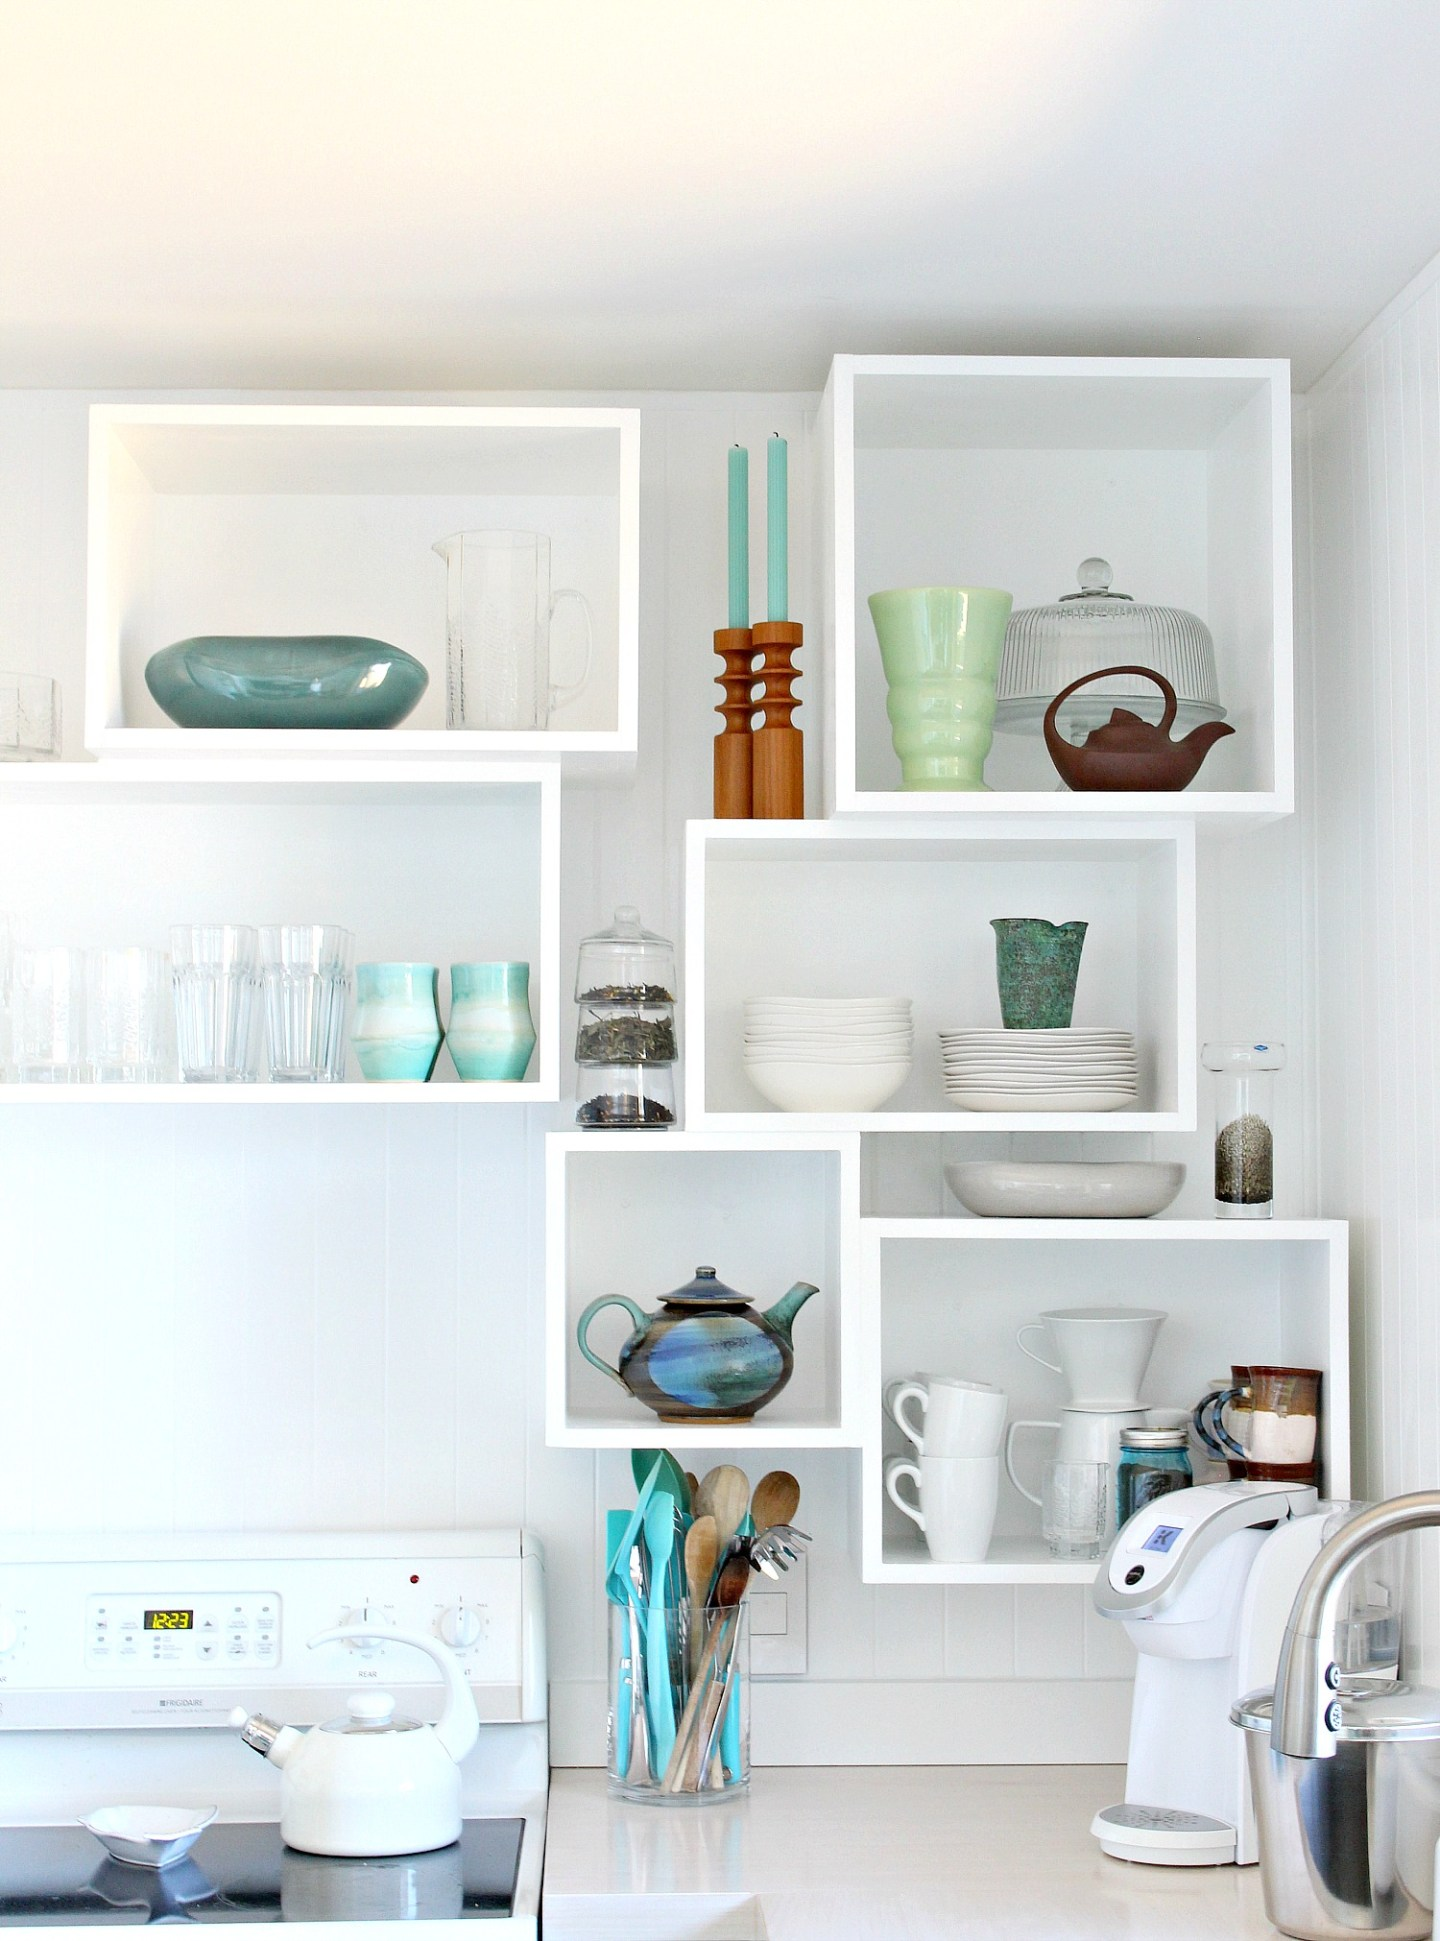 How to Build Wall Cubbies   Fresh Take on Kitchen Open Shelving. Learn How to Build DIY Wall Cubbies for Extra Storage! #diystorage #diyproject #diykitchen